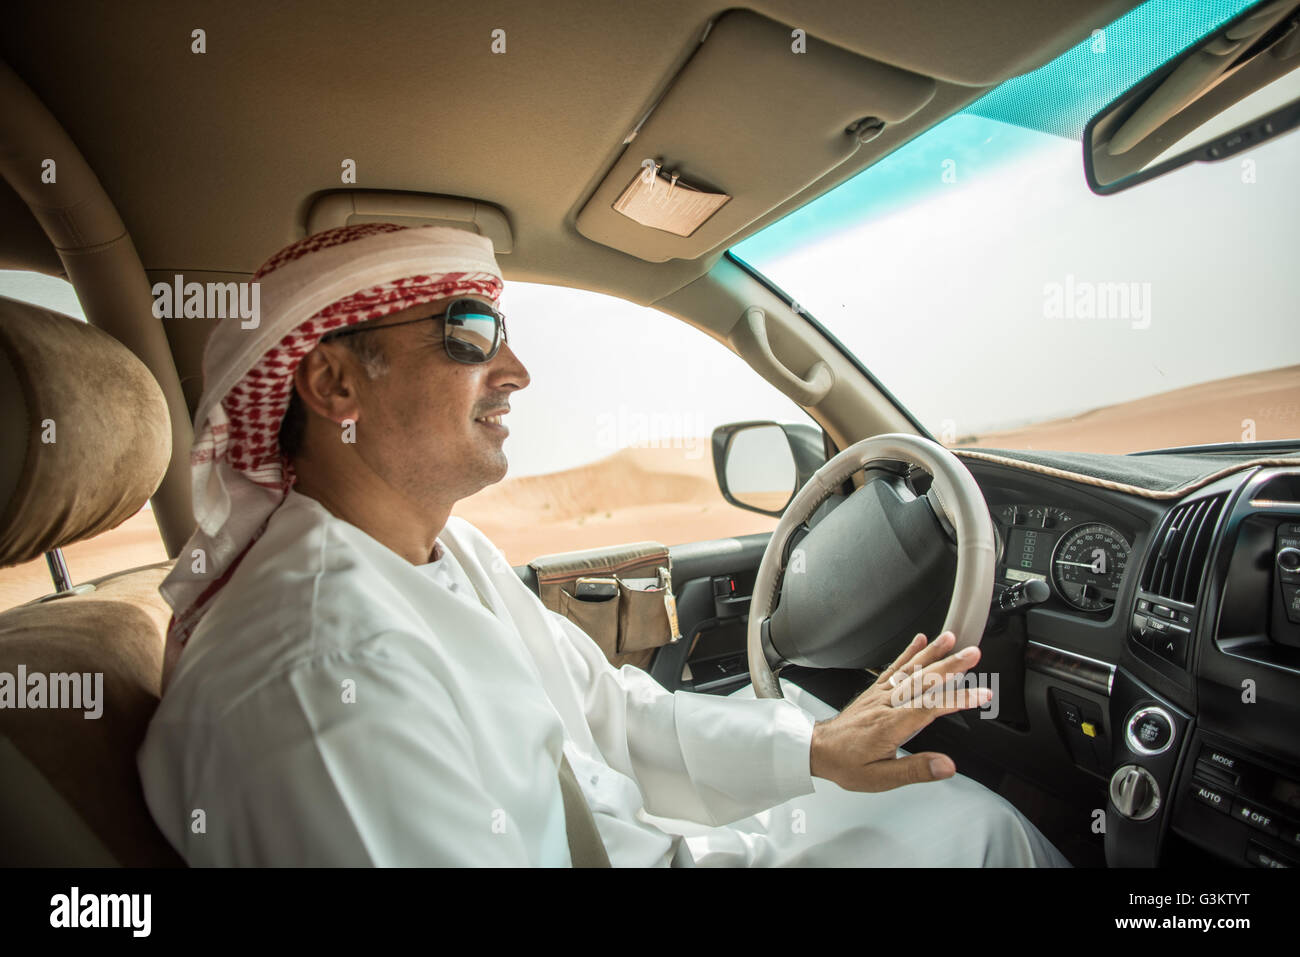 Middle eastern man wearing traditional clothes driving off road vehicle in desert, Dubai, United Arab Emirates - Stock Image